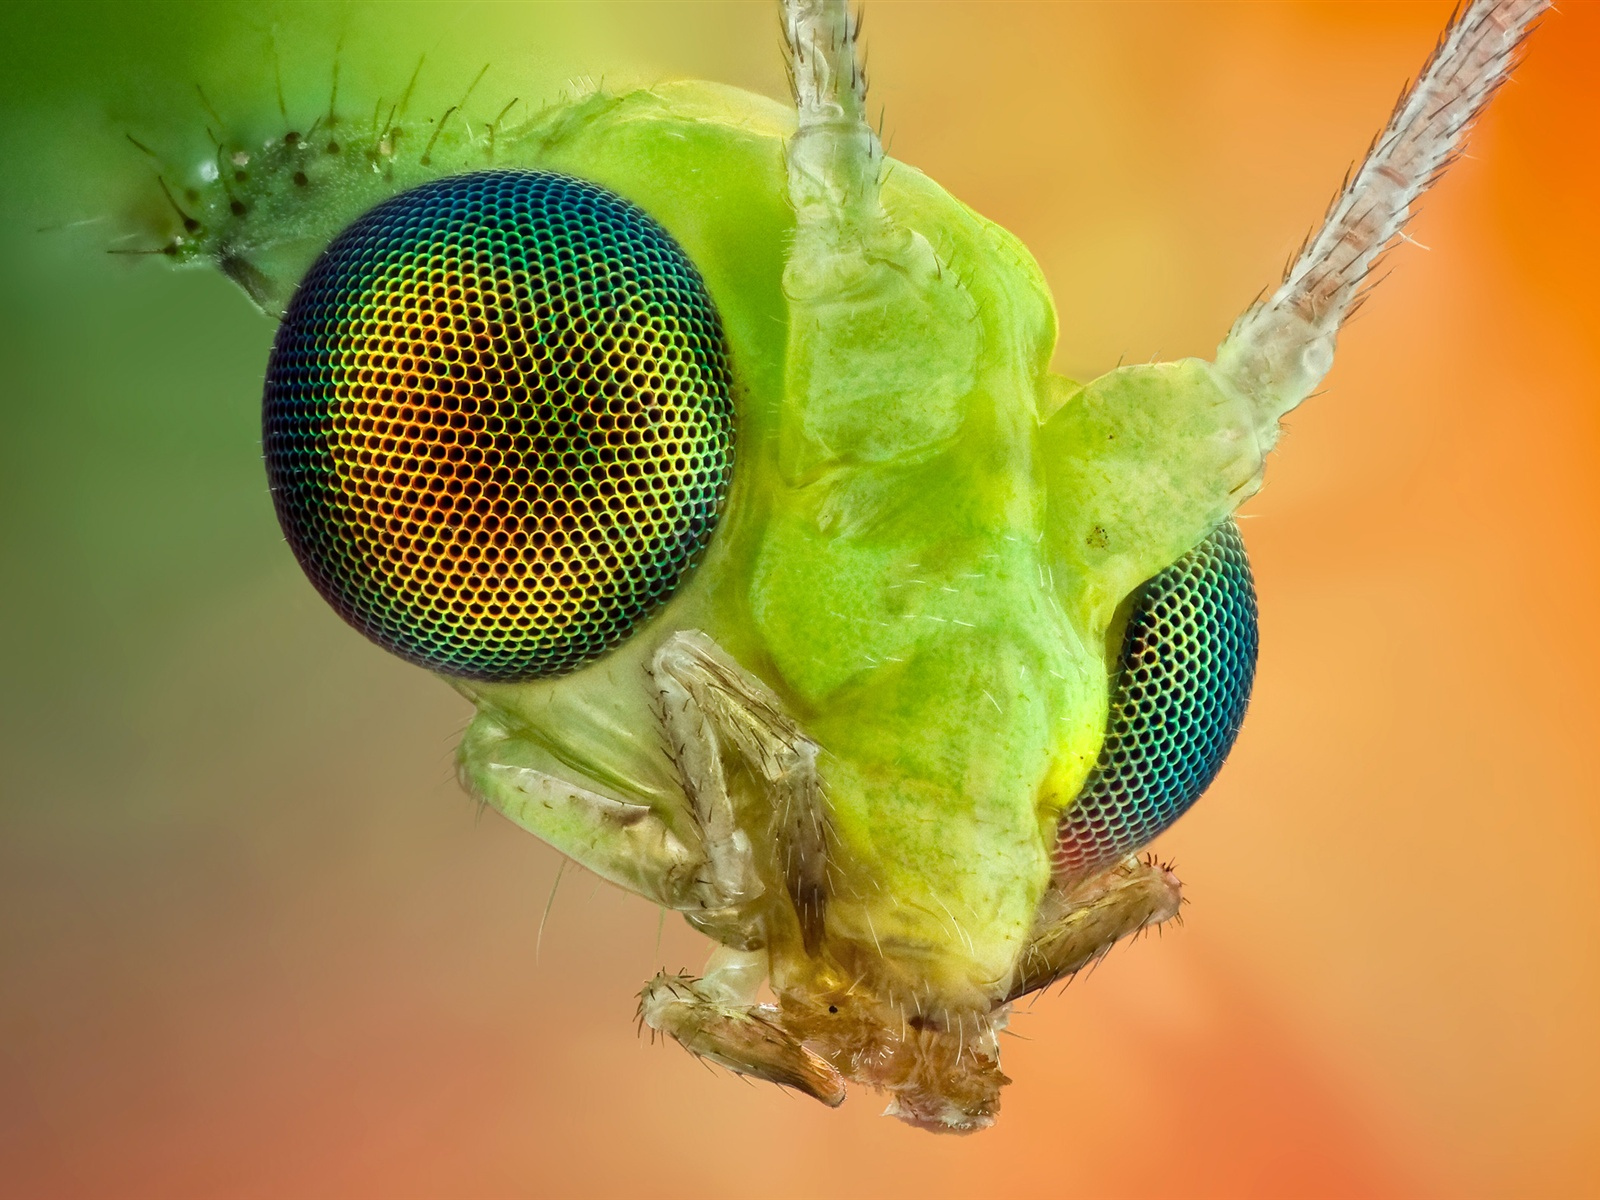 The insect compound eye macro wallpaper 1600x1200.